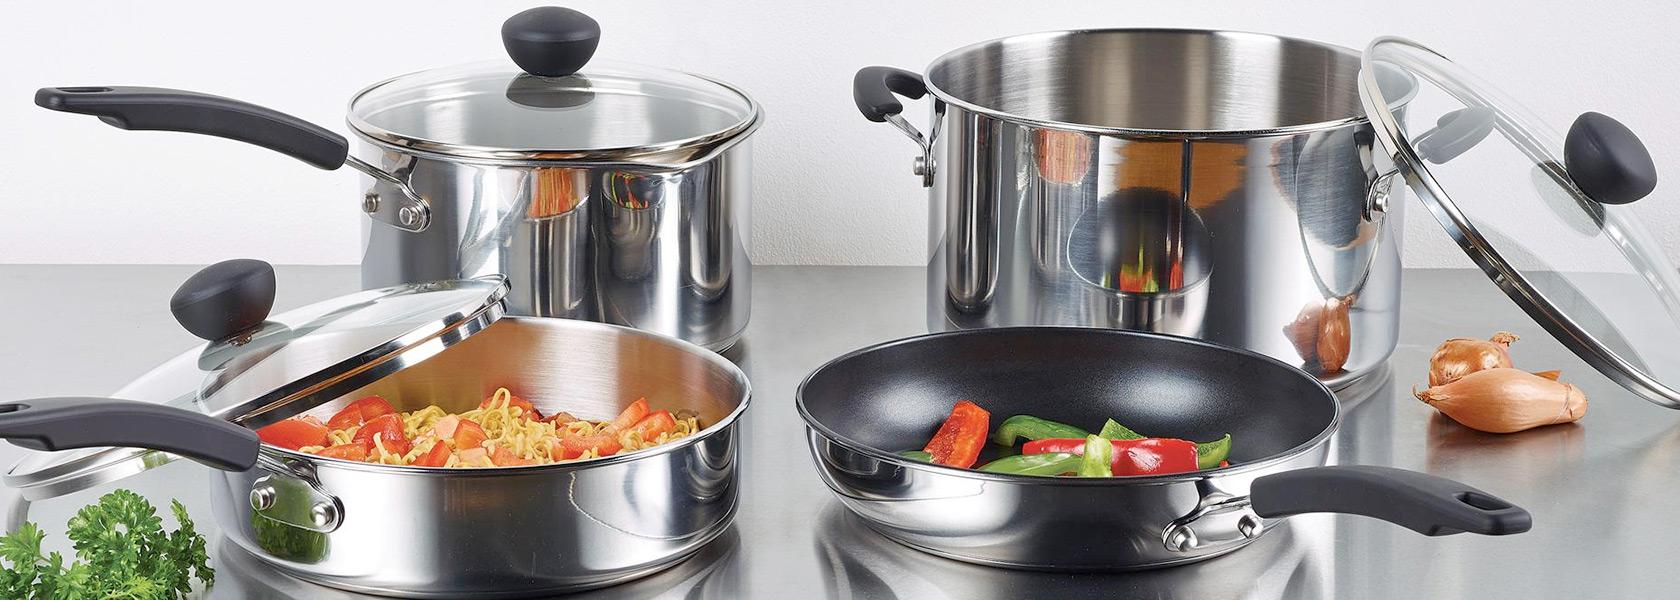 Pot Shots – The Essential Guide to Selecting the Right Pots & Pans -